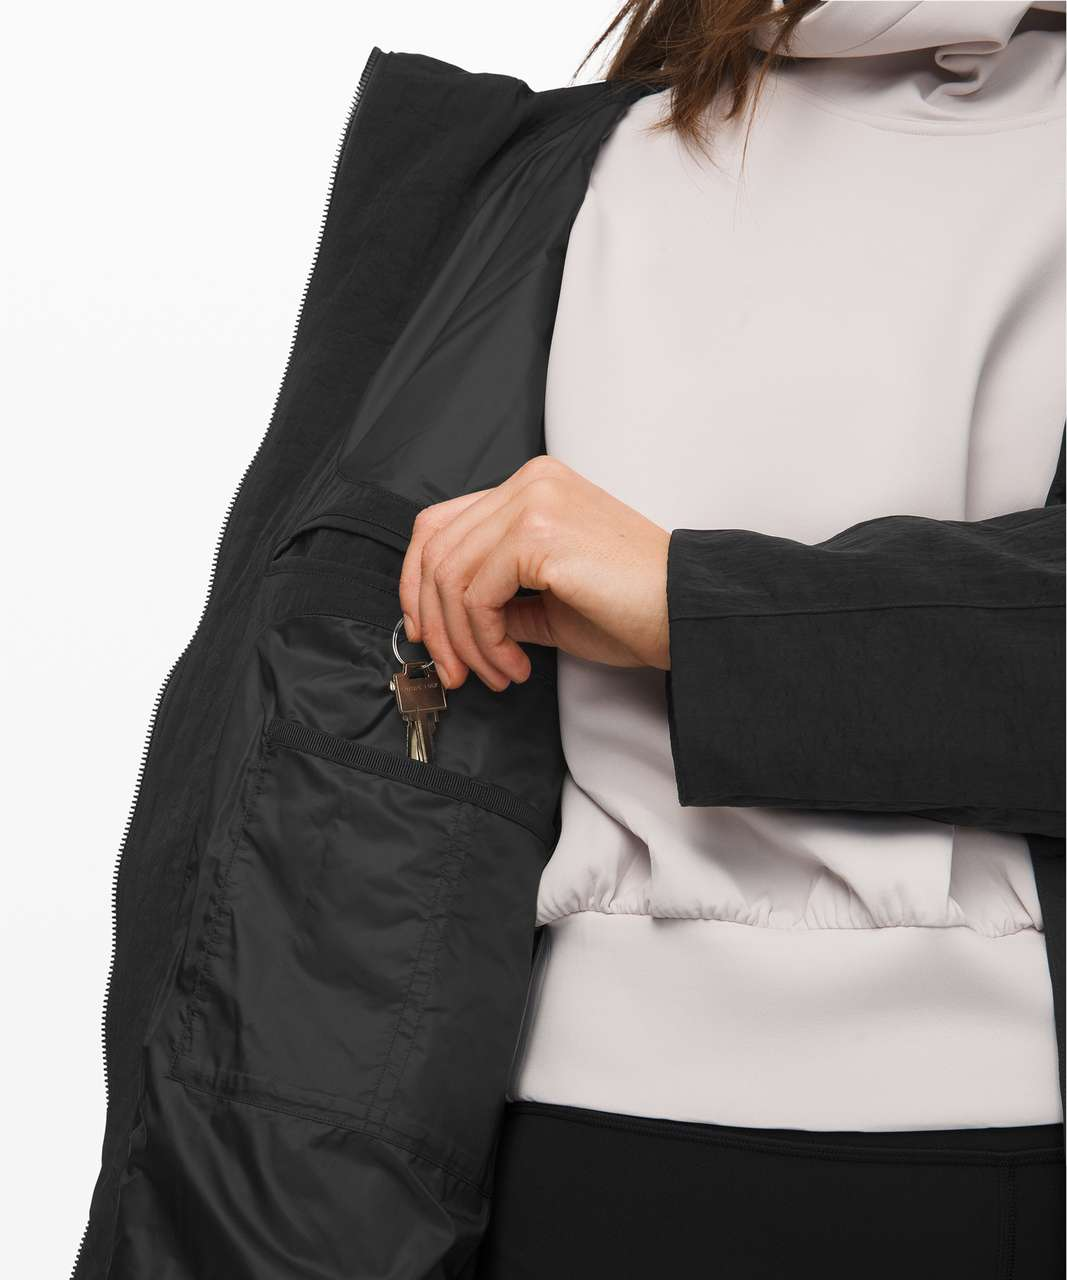 Lululemon New Moves Jacket - Black